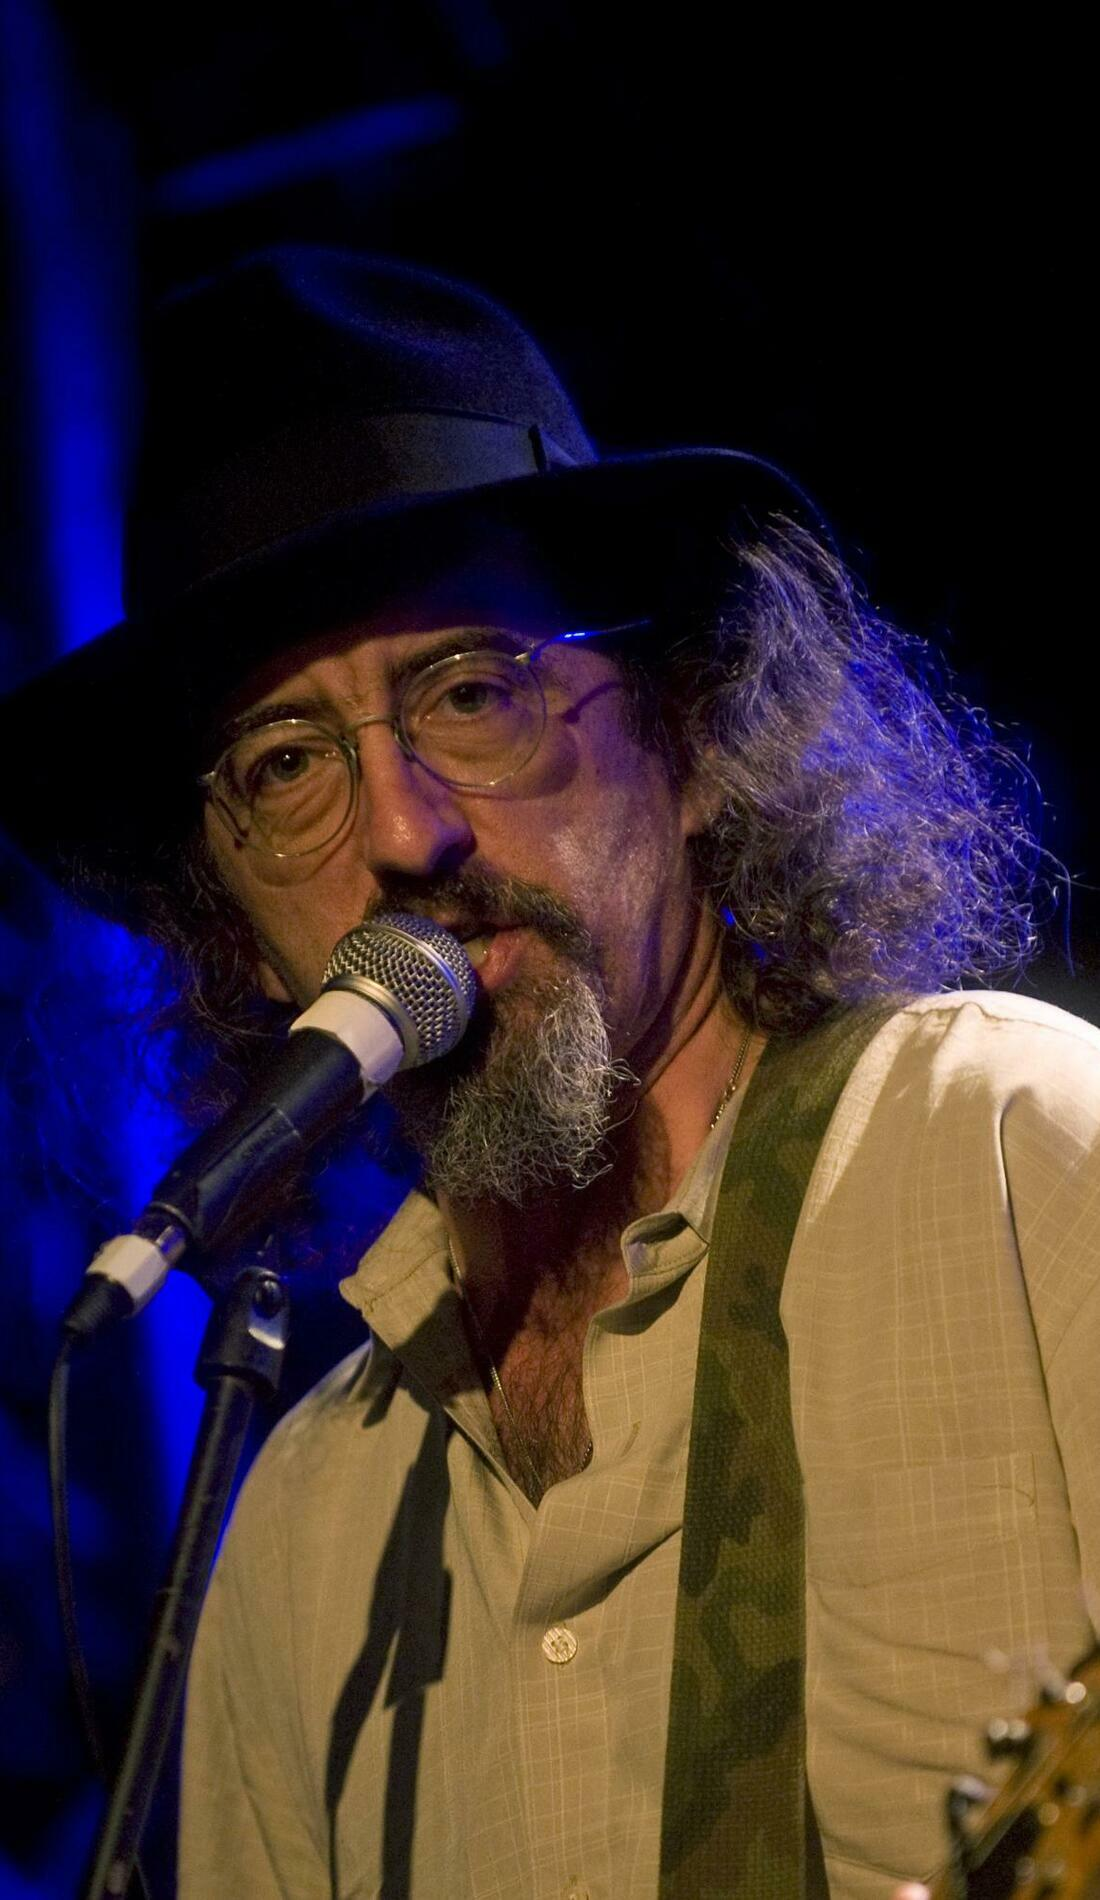 A James McMurtry live event